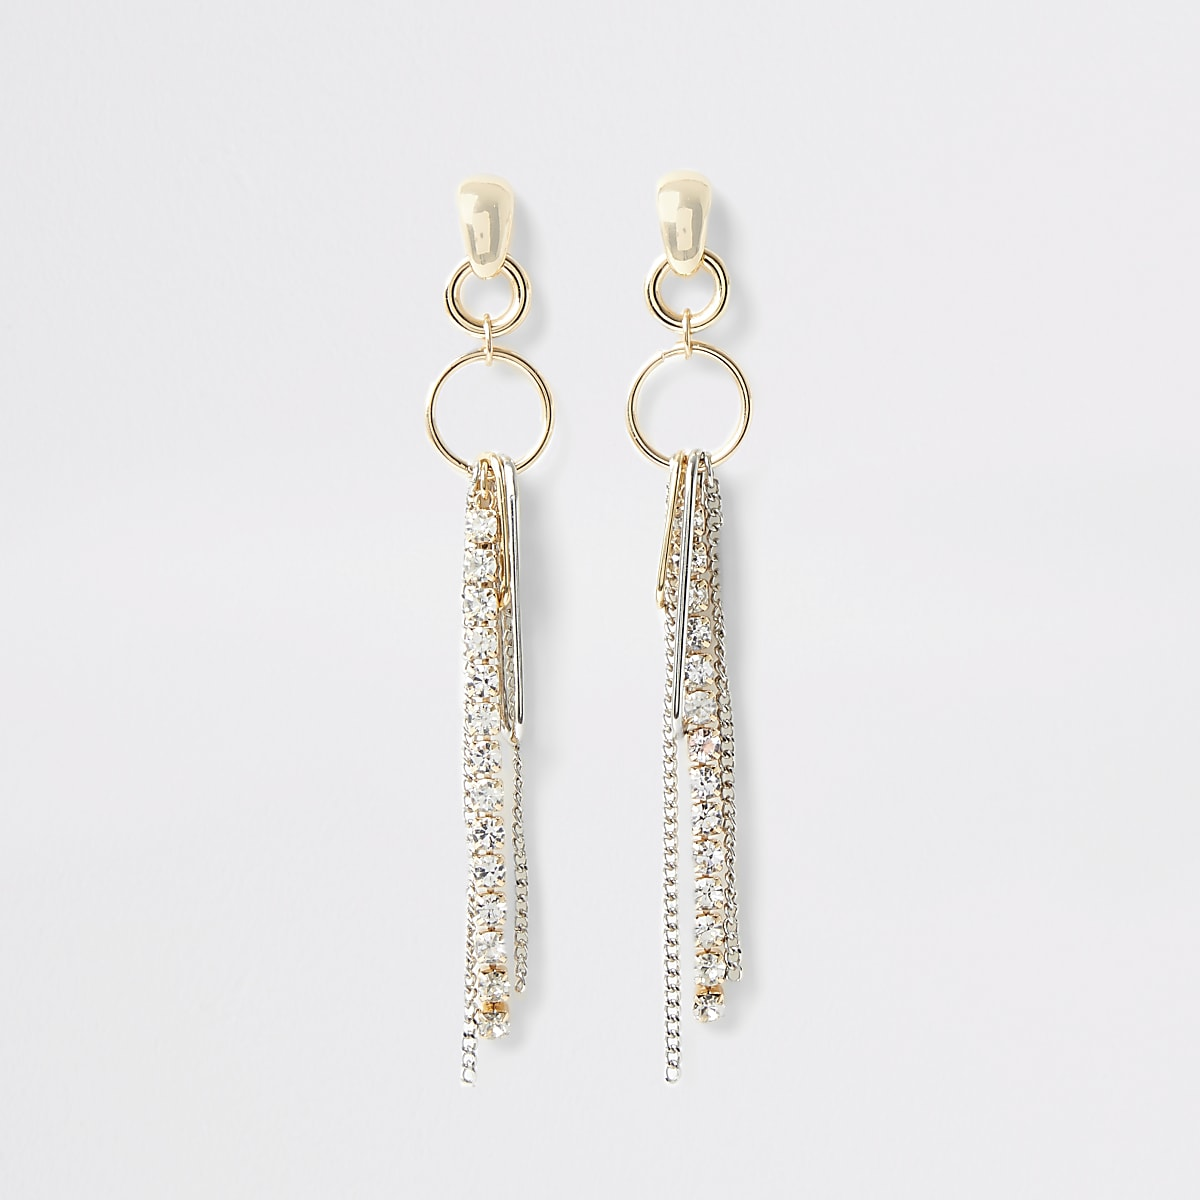 Gold color cupchain drop earrings